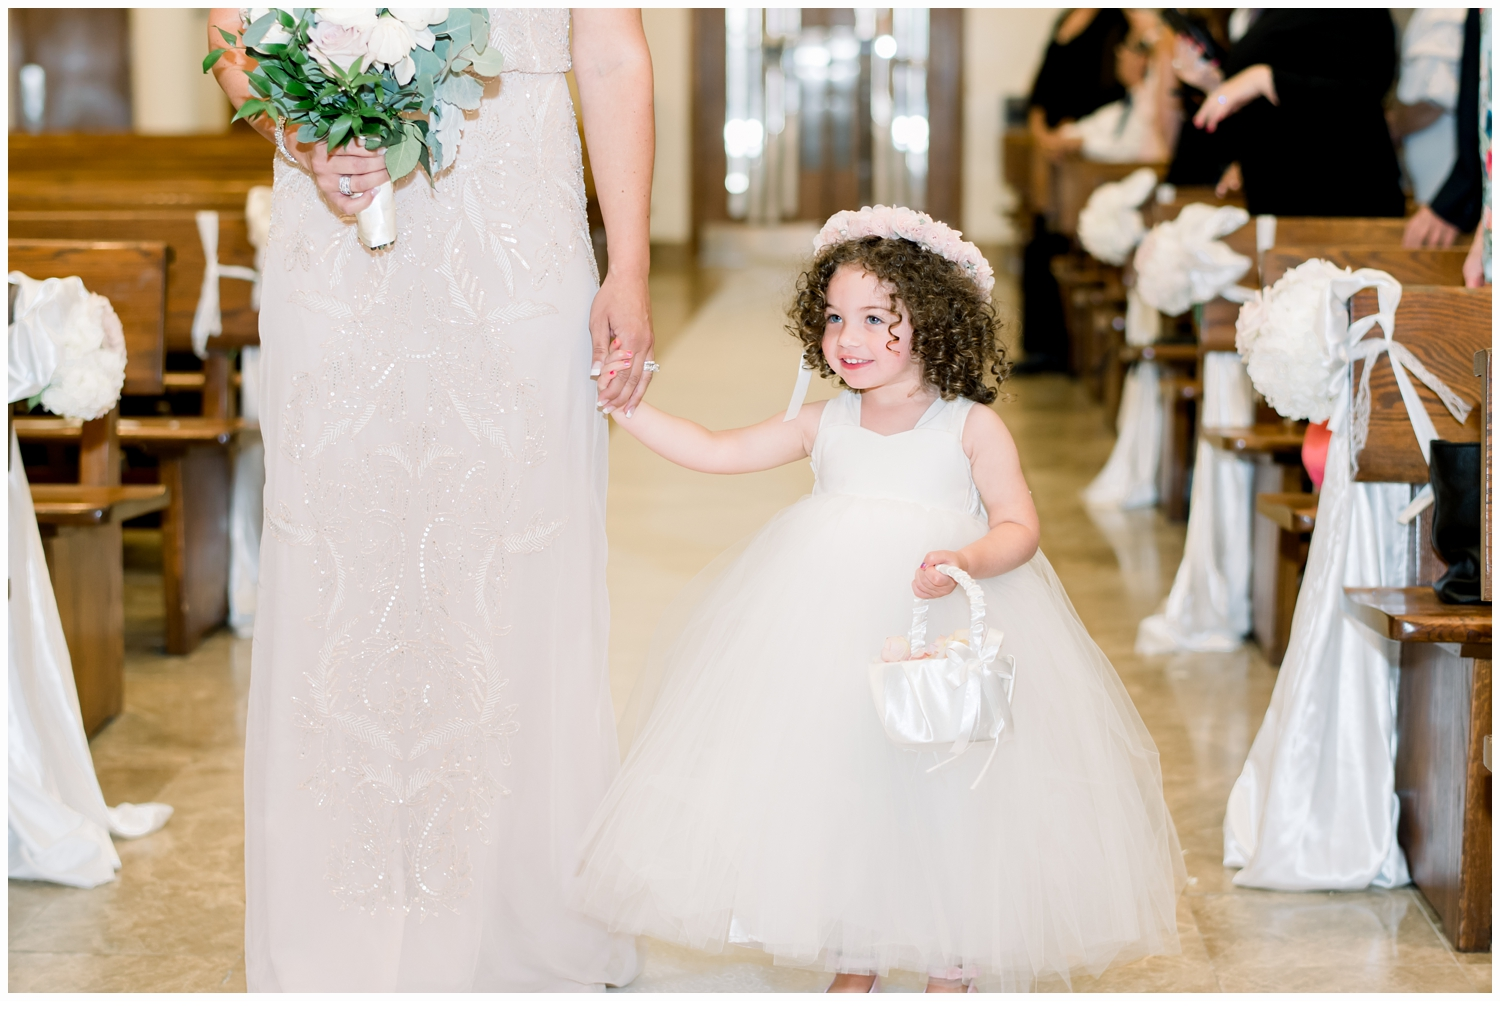 flower girl coming down aisle in church